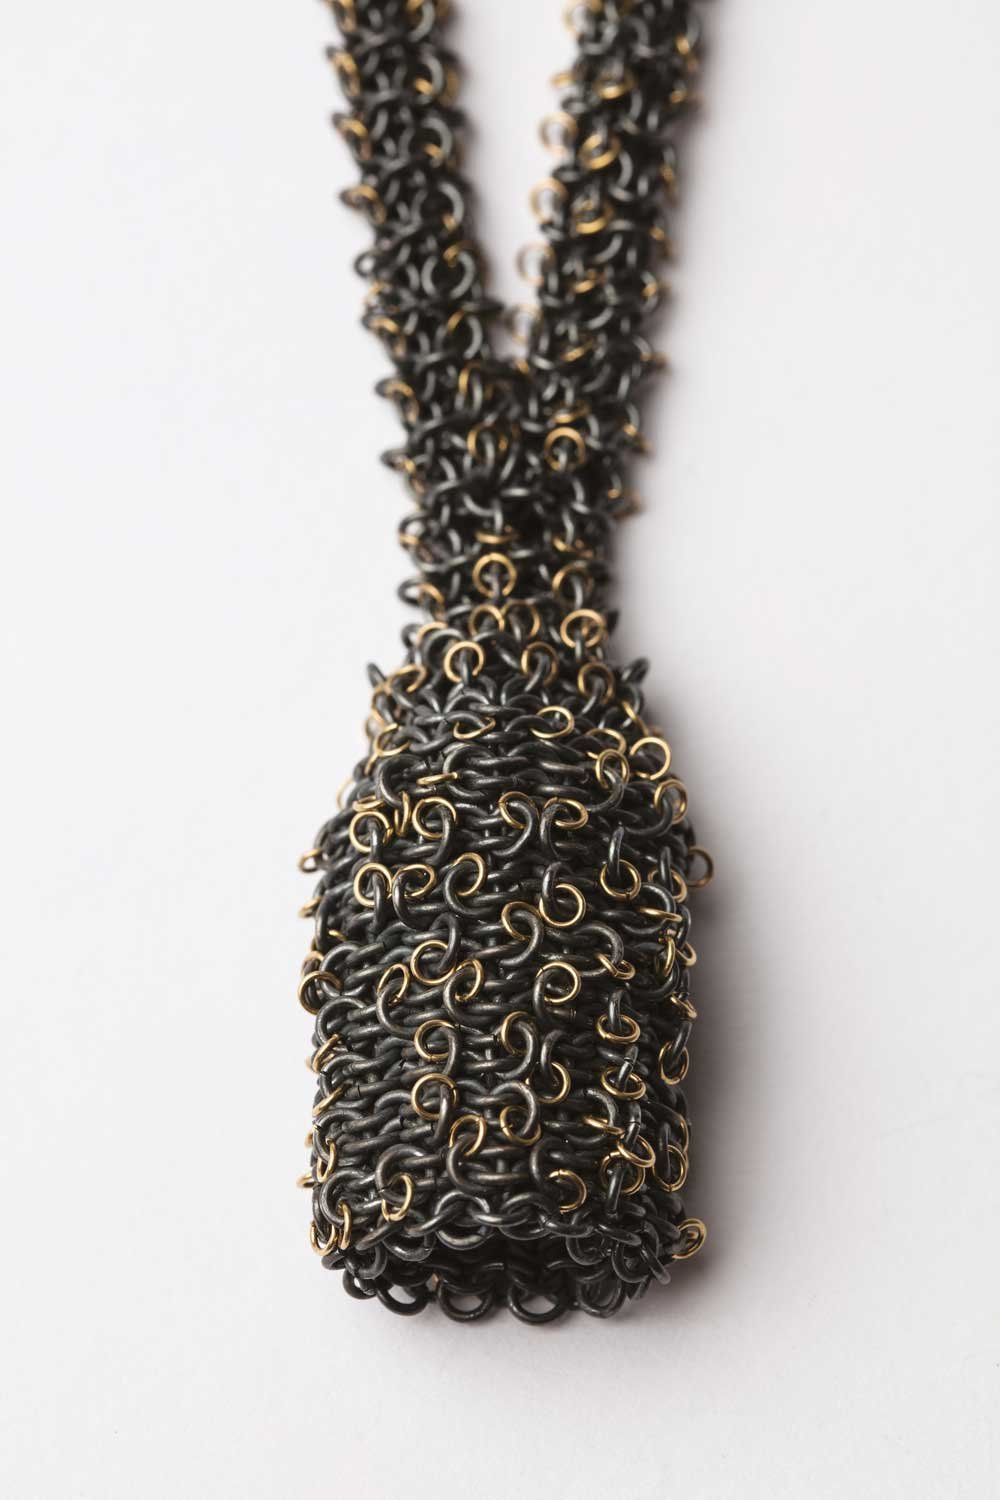 Oxidised silver and 18ct gold skep necklace